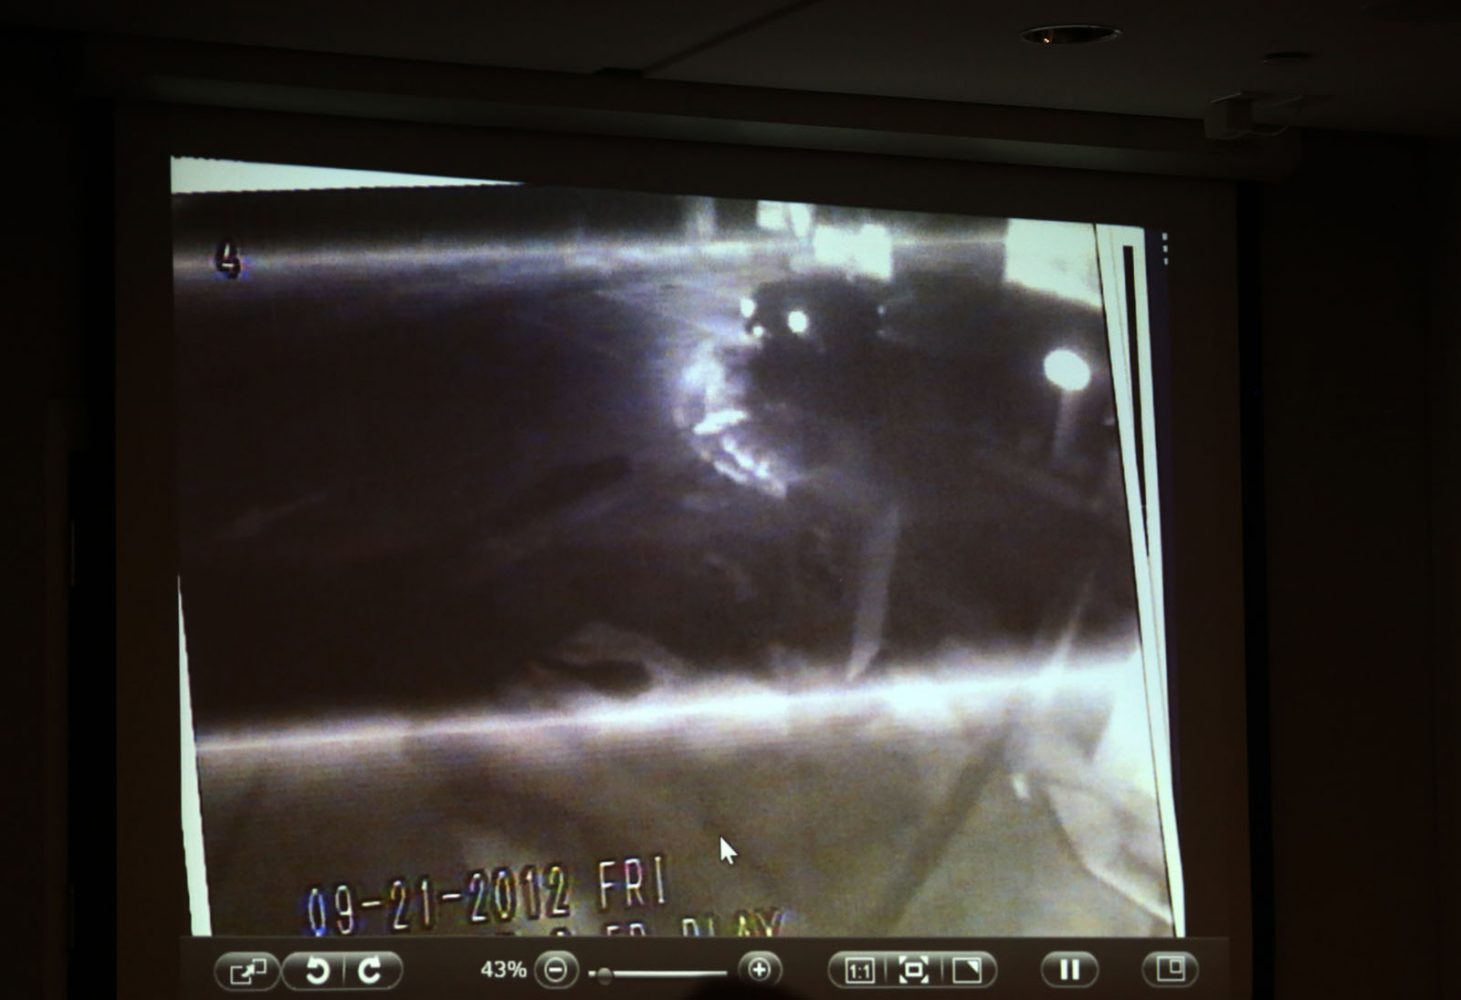 A screen grab from a surveillance camera at Scrubs Car Wash allegedly showing Pedro Bravo's Chevy Blazer leaving the wash is shown to the jury during Bravo's murder trial in courtroom 1B of the Alachua County Criminal Justice Center Friday, August 8, 2014.  Bravo is accused of killing University of Florida student Christian Aguilar.  (Doug Finger/The Gainesville Sun/Pool)